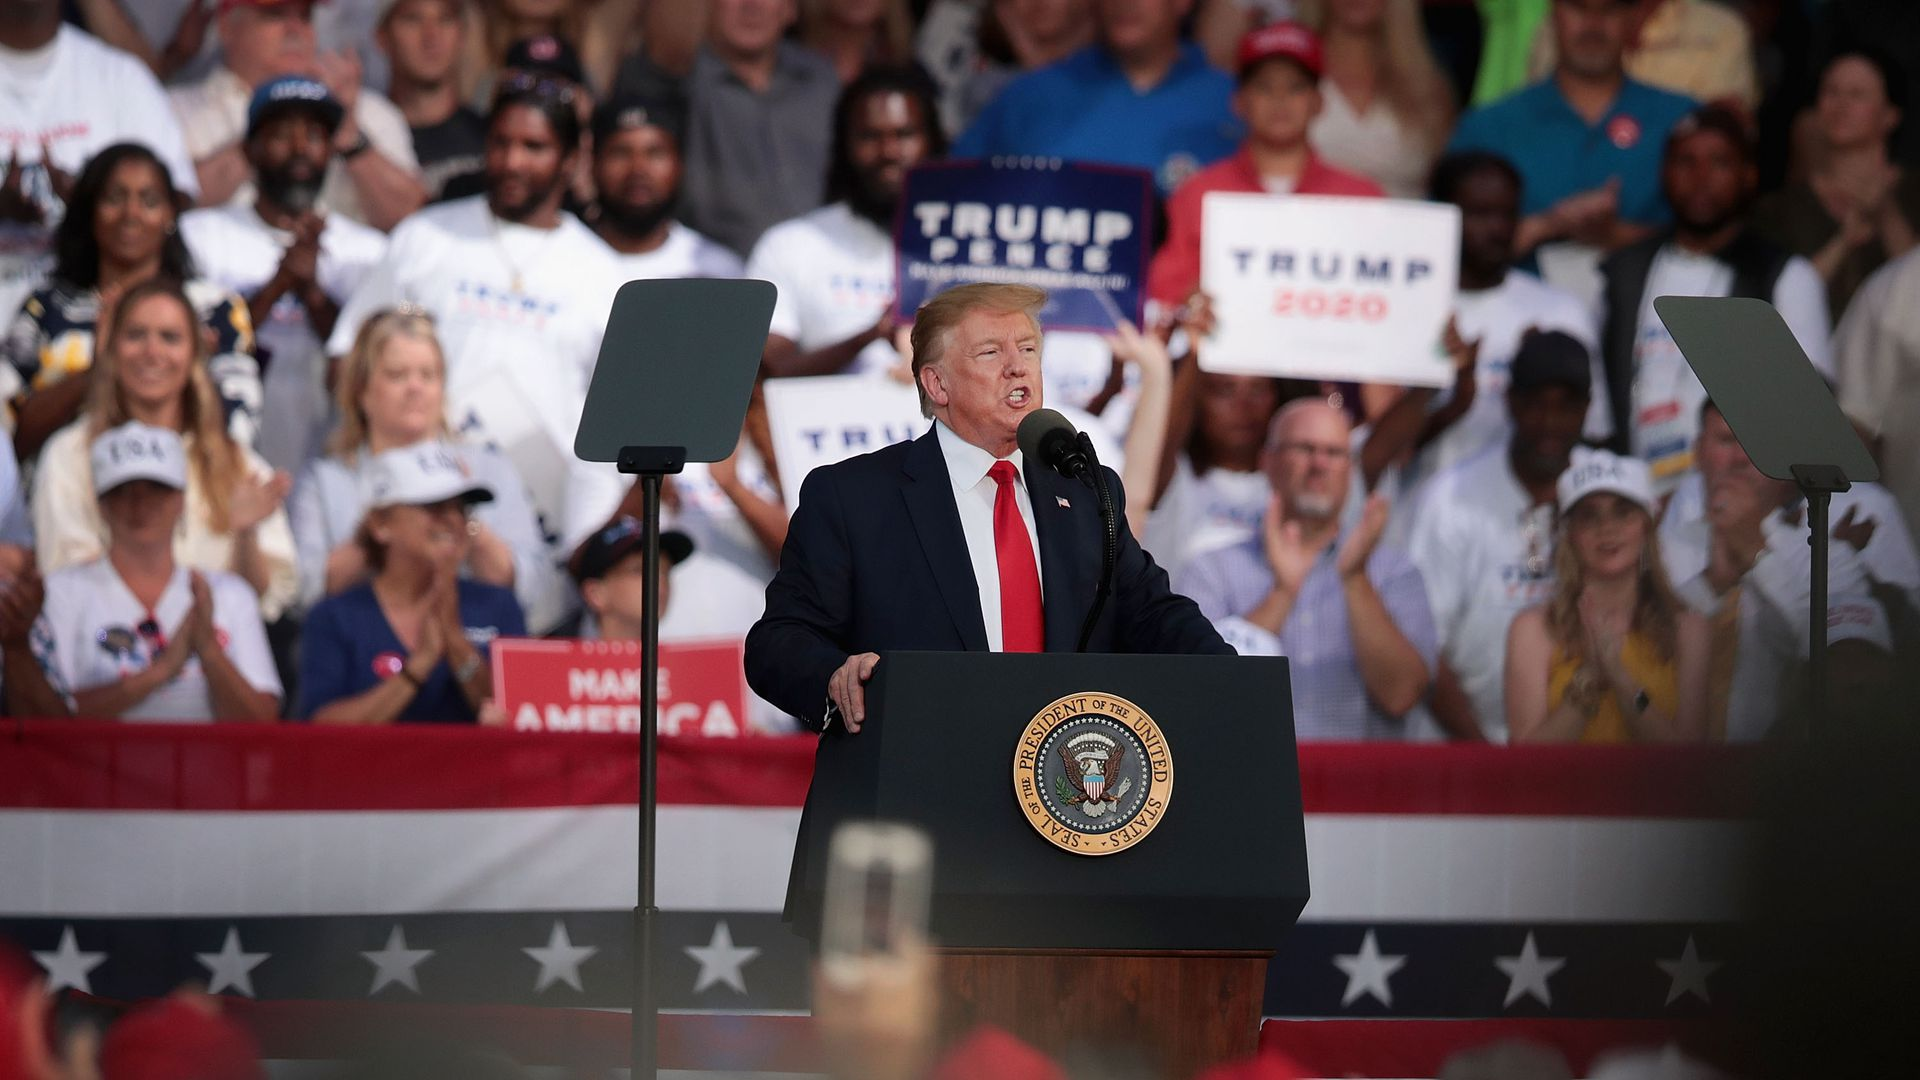 President Donald Trump speaks during a rally at the Aaron Bessant Amphitheater on May 8, 2019 in Panama City Beach, Florida.